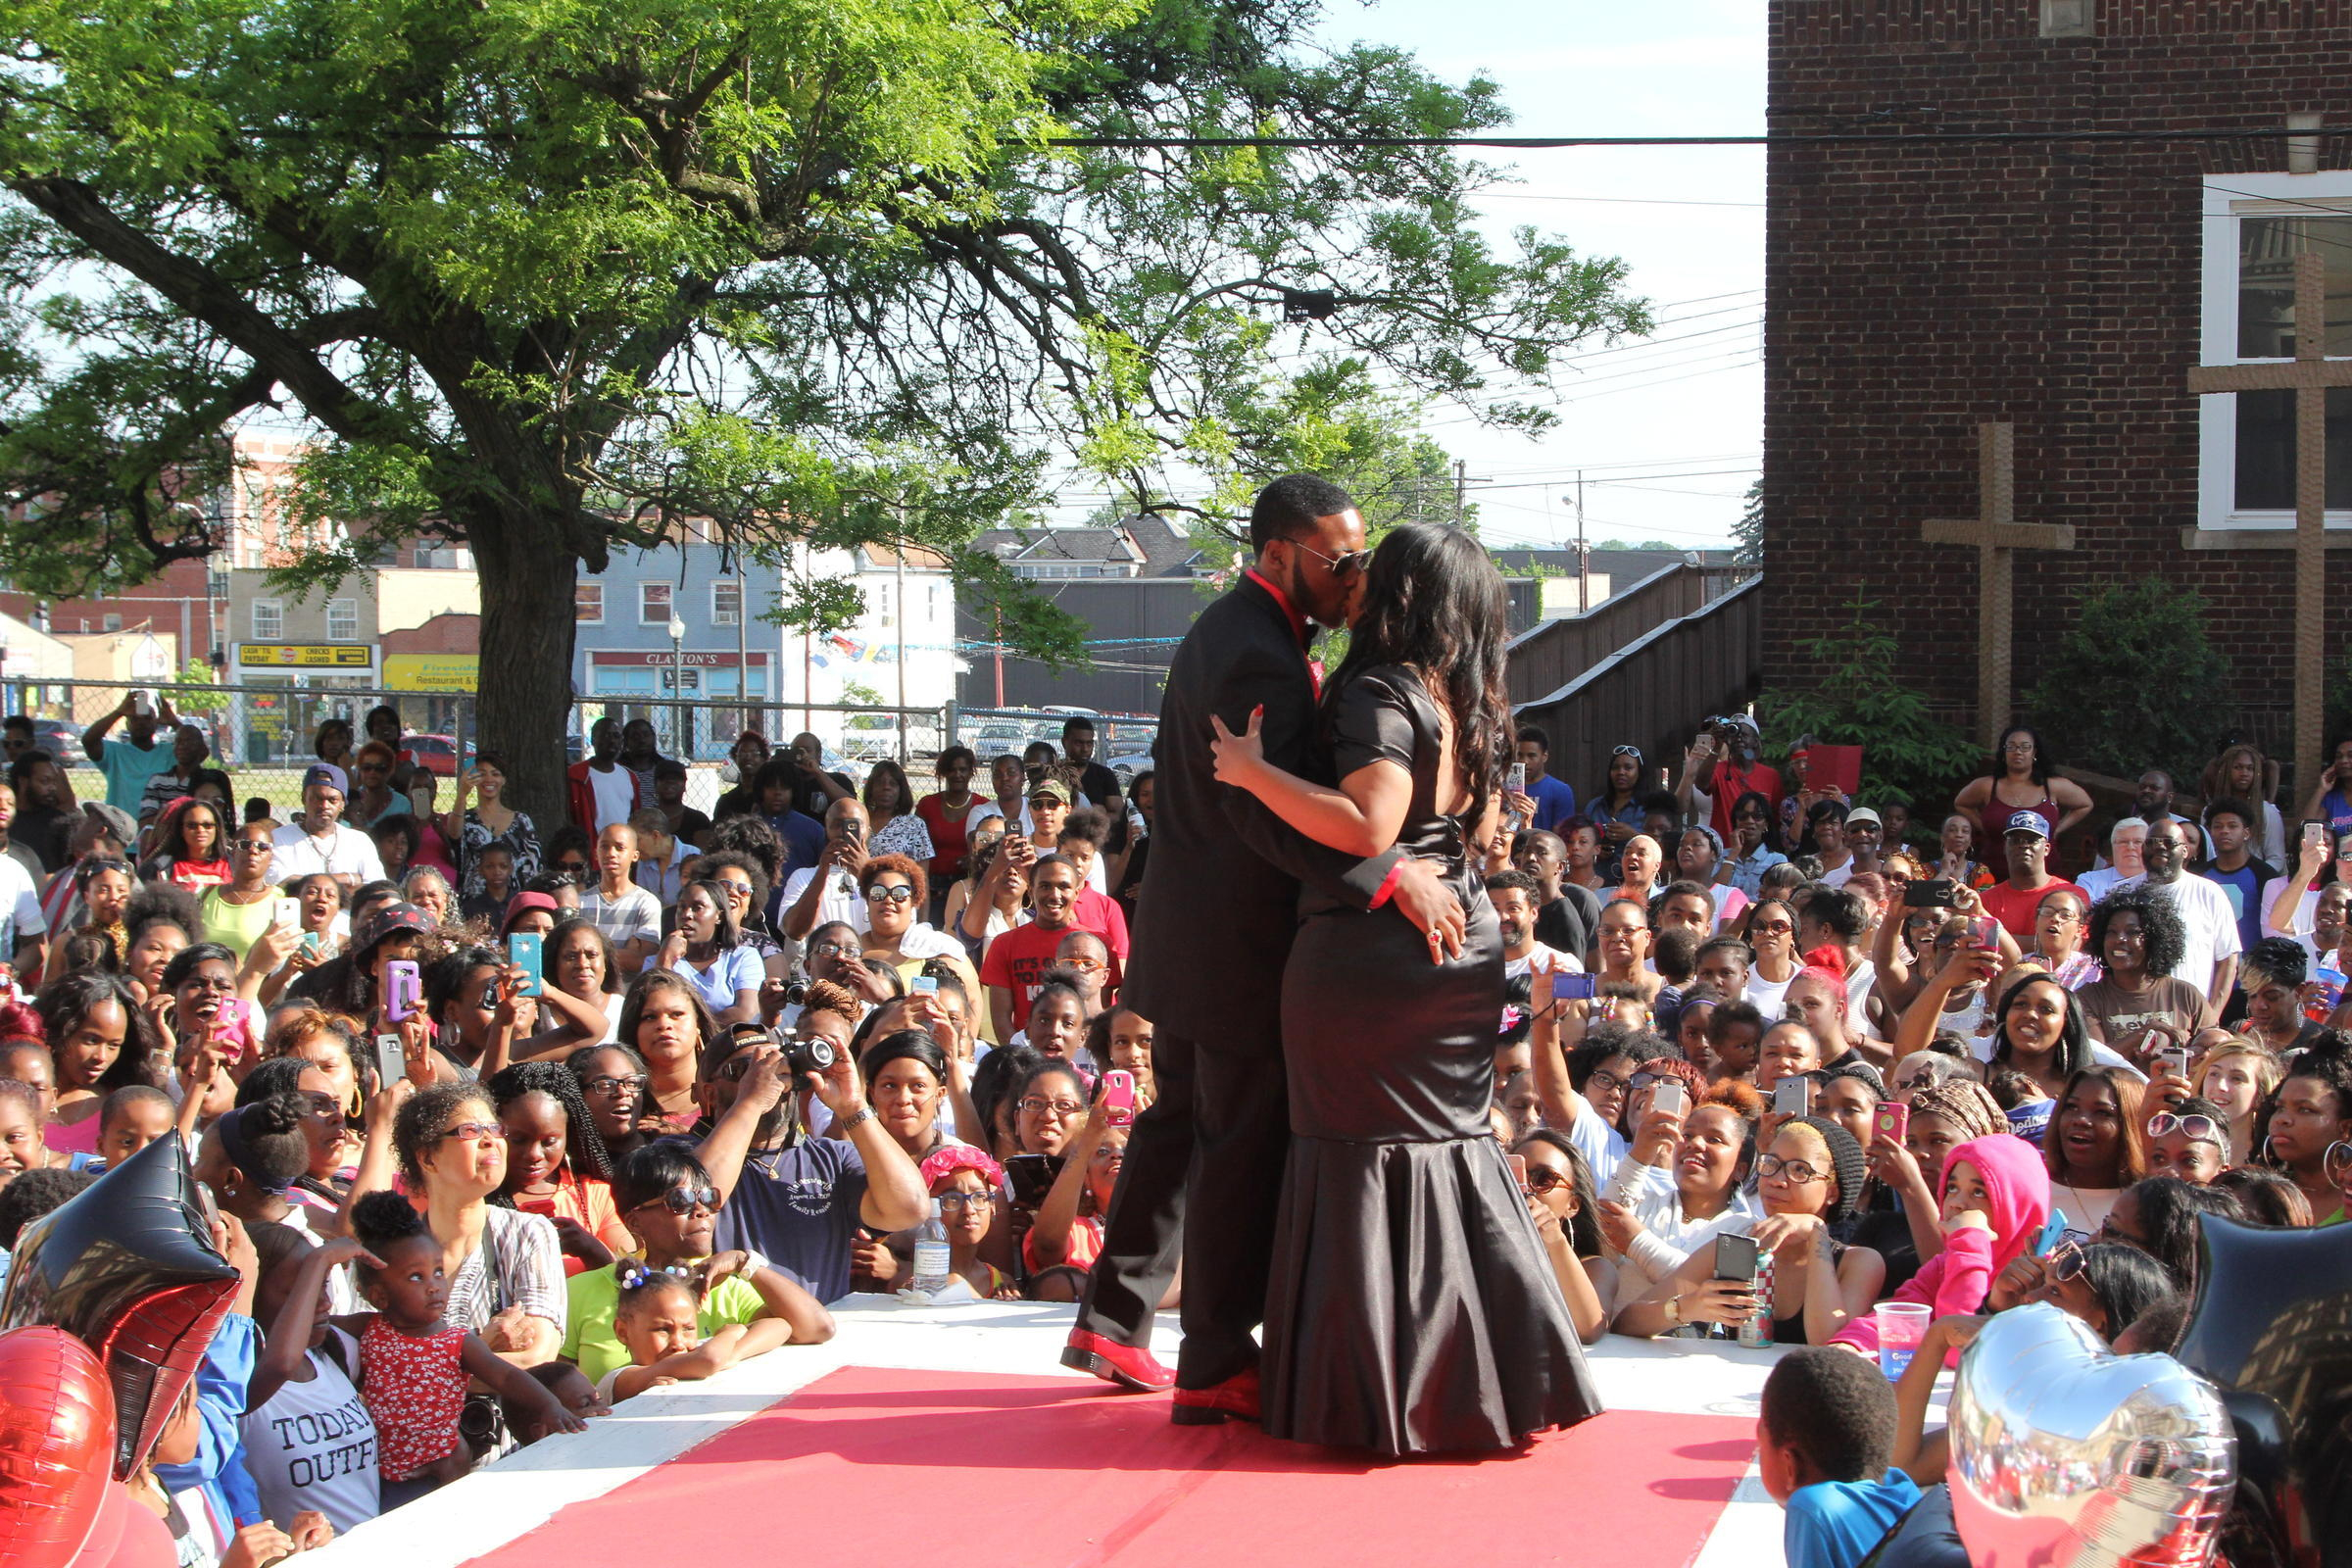 Wilkinsburg Community Says Goodbye To Students' Safe Place intended for University Of Alabama Fall Academic 1991 Calendar